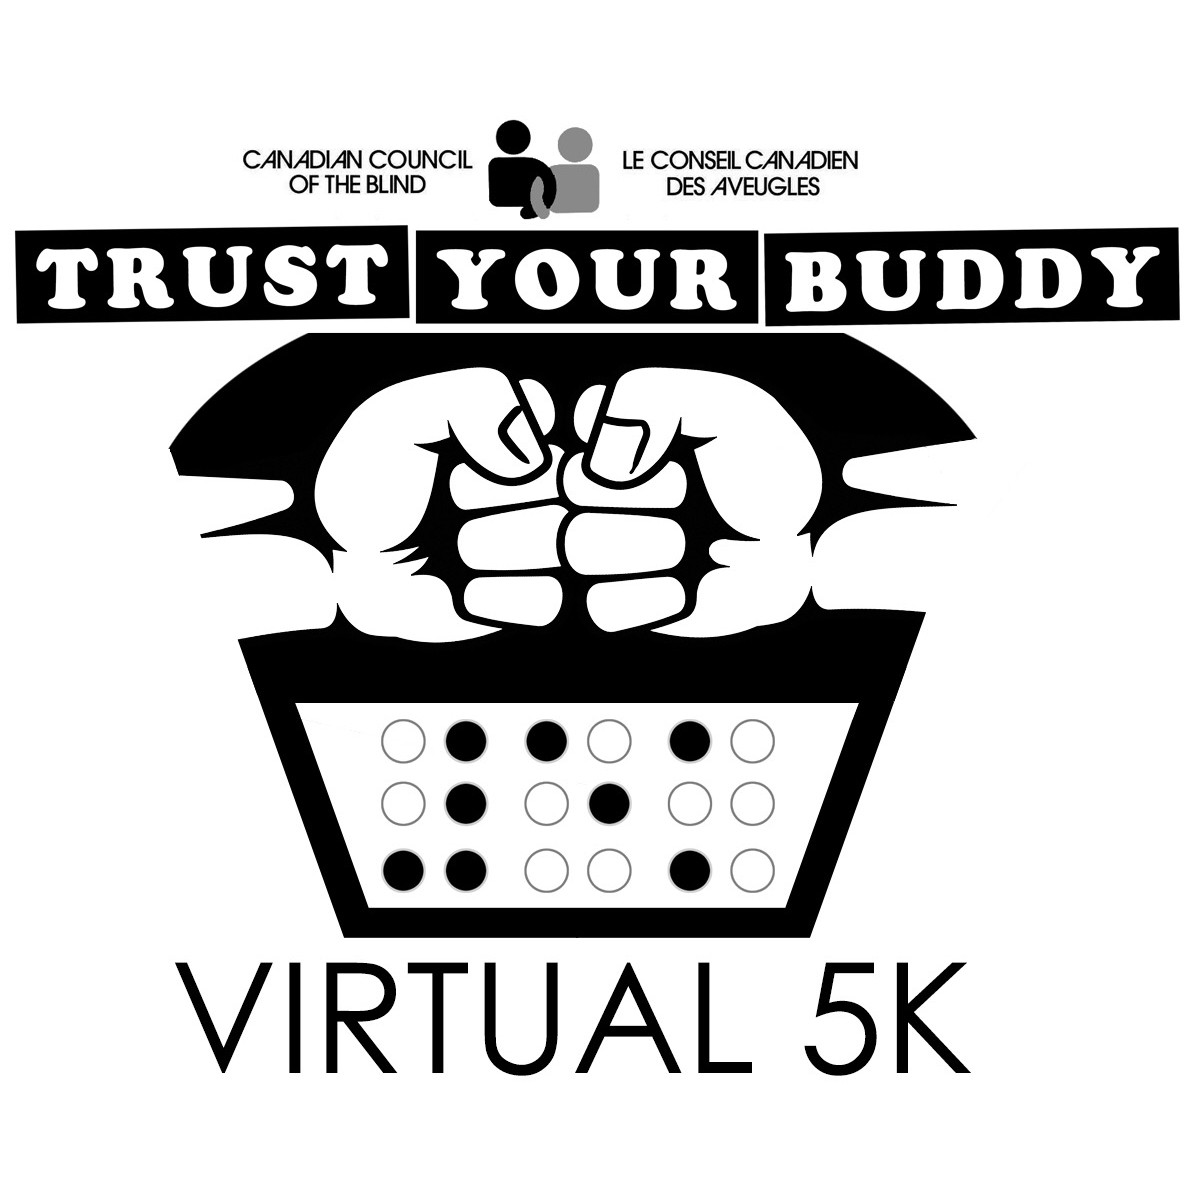 2017 — CCB TRUST YOUR BUDDY VIRTUAL 5K — Race Roster